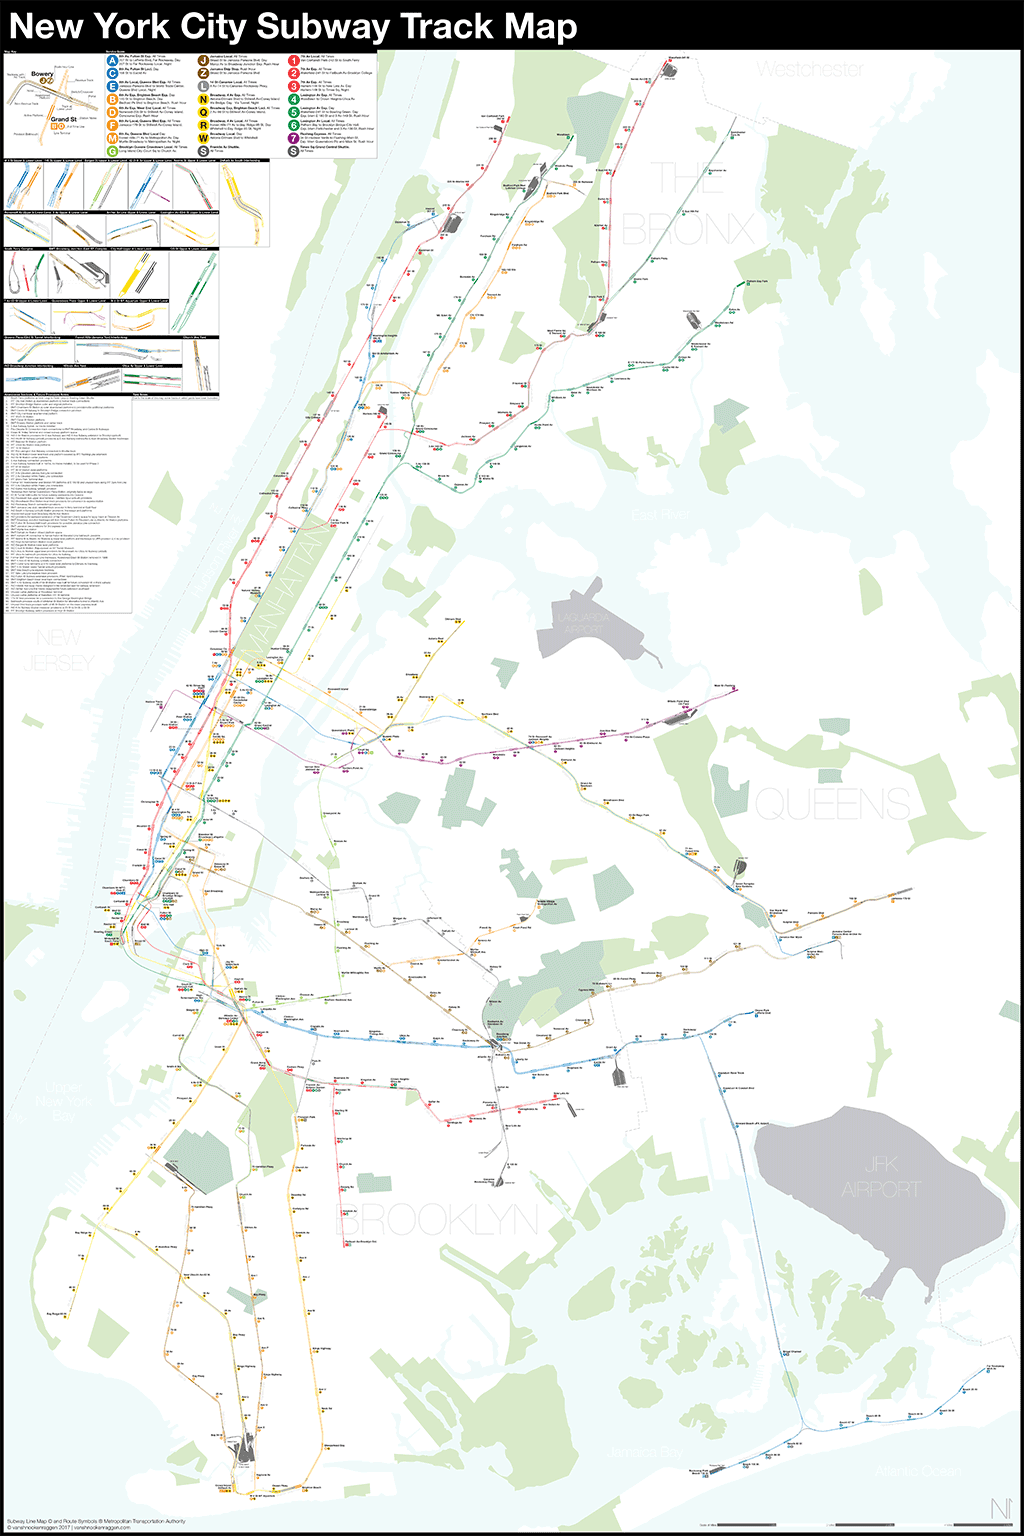 New York And Subway Map.A Complete And Geographically Accurate Nyc Subway Track Map